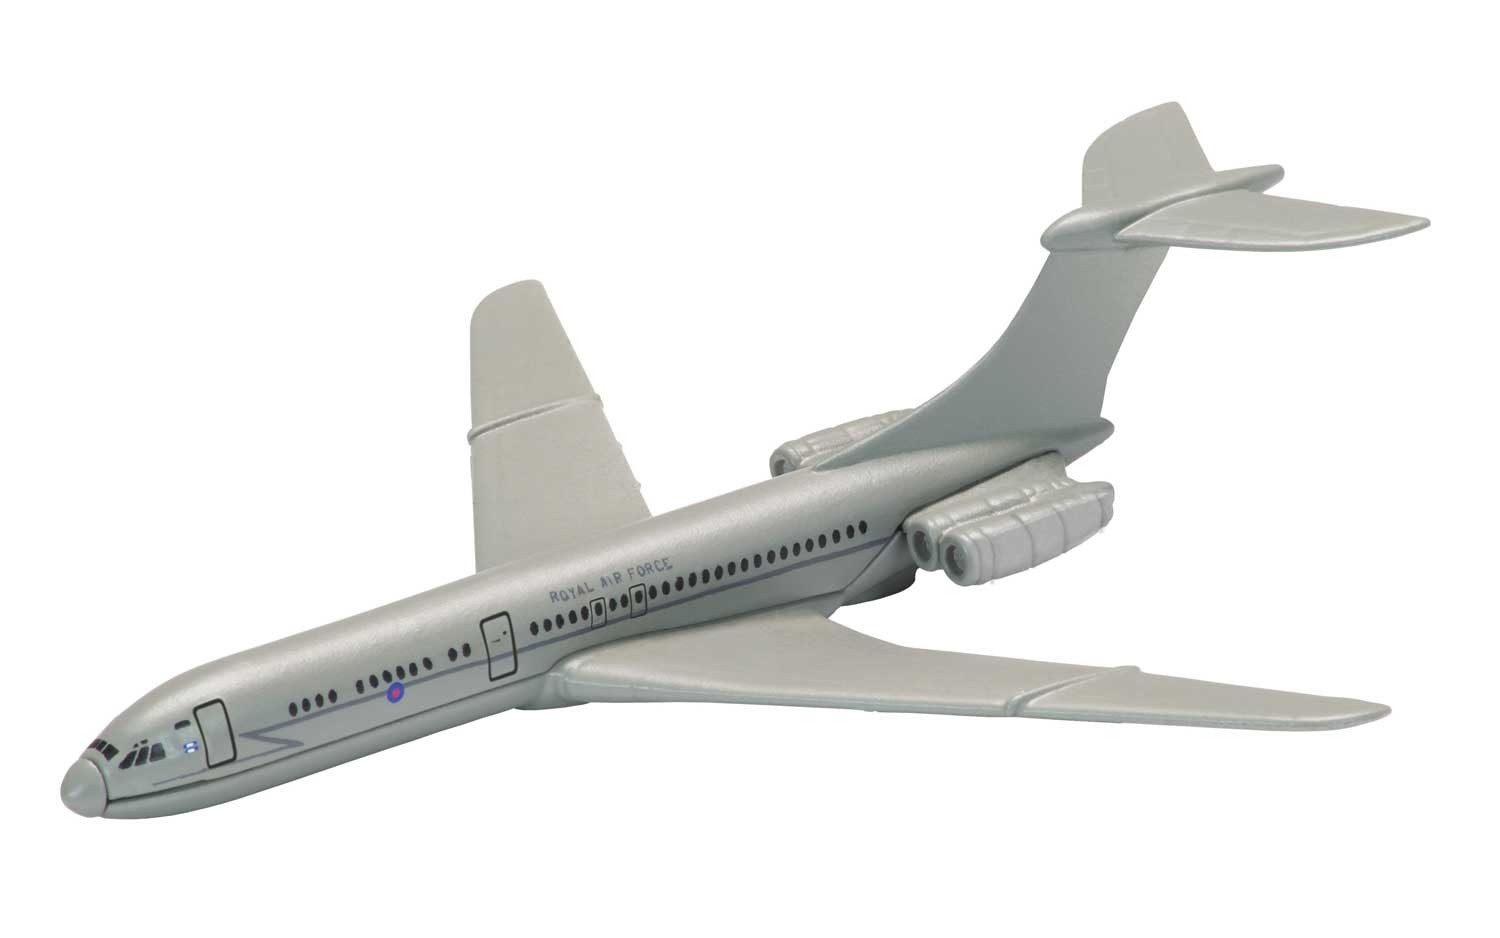 Corgi: Showcase Vickers VC10 - Diecast Model image